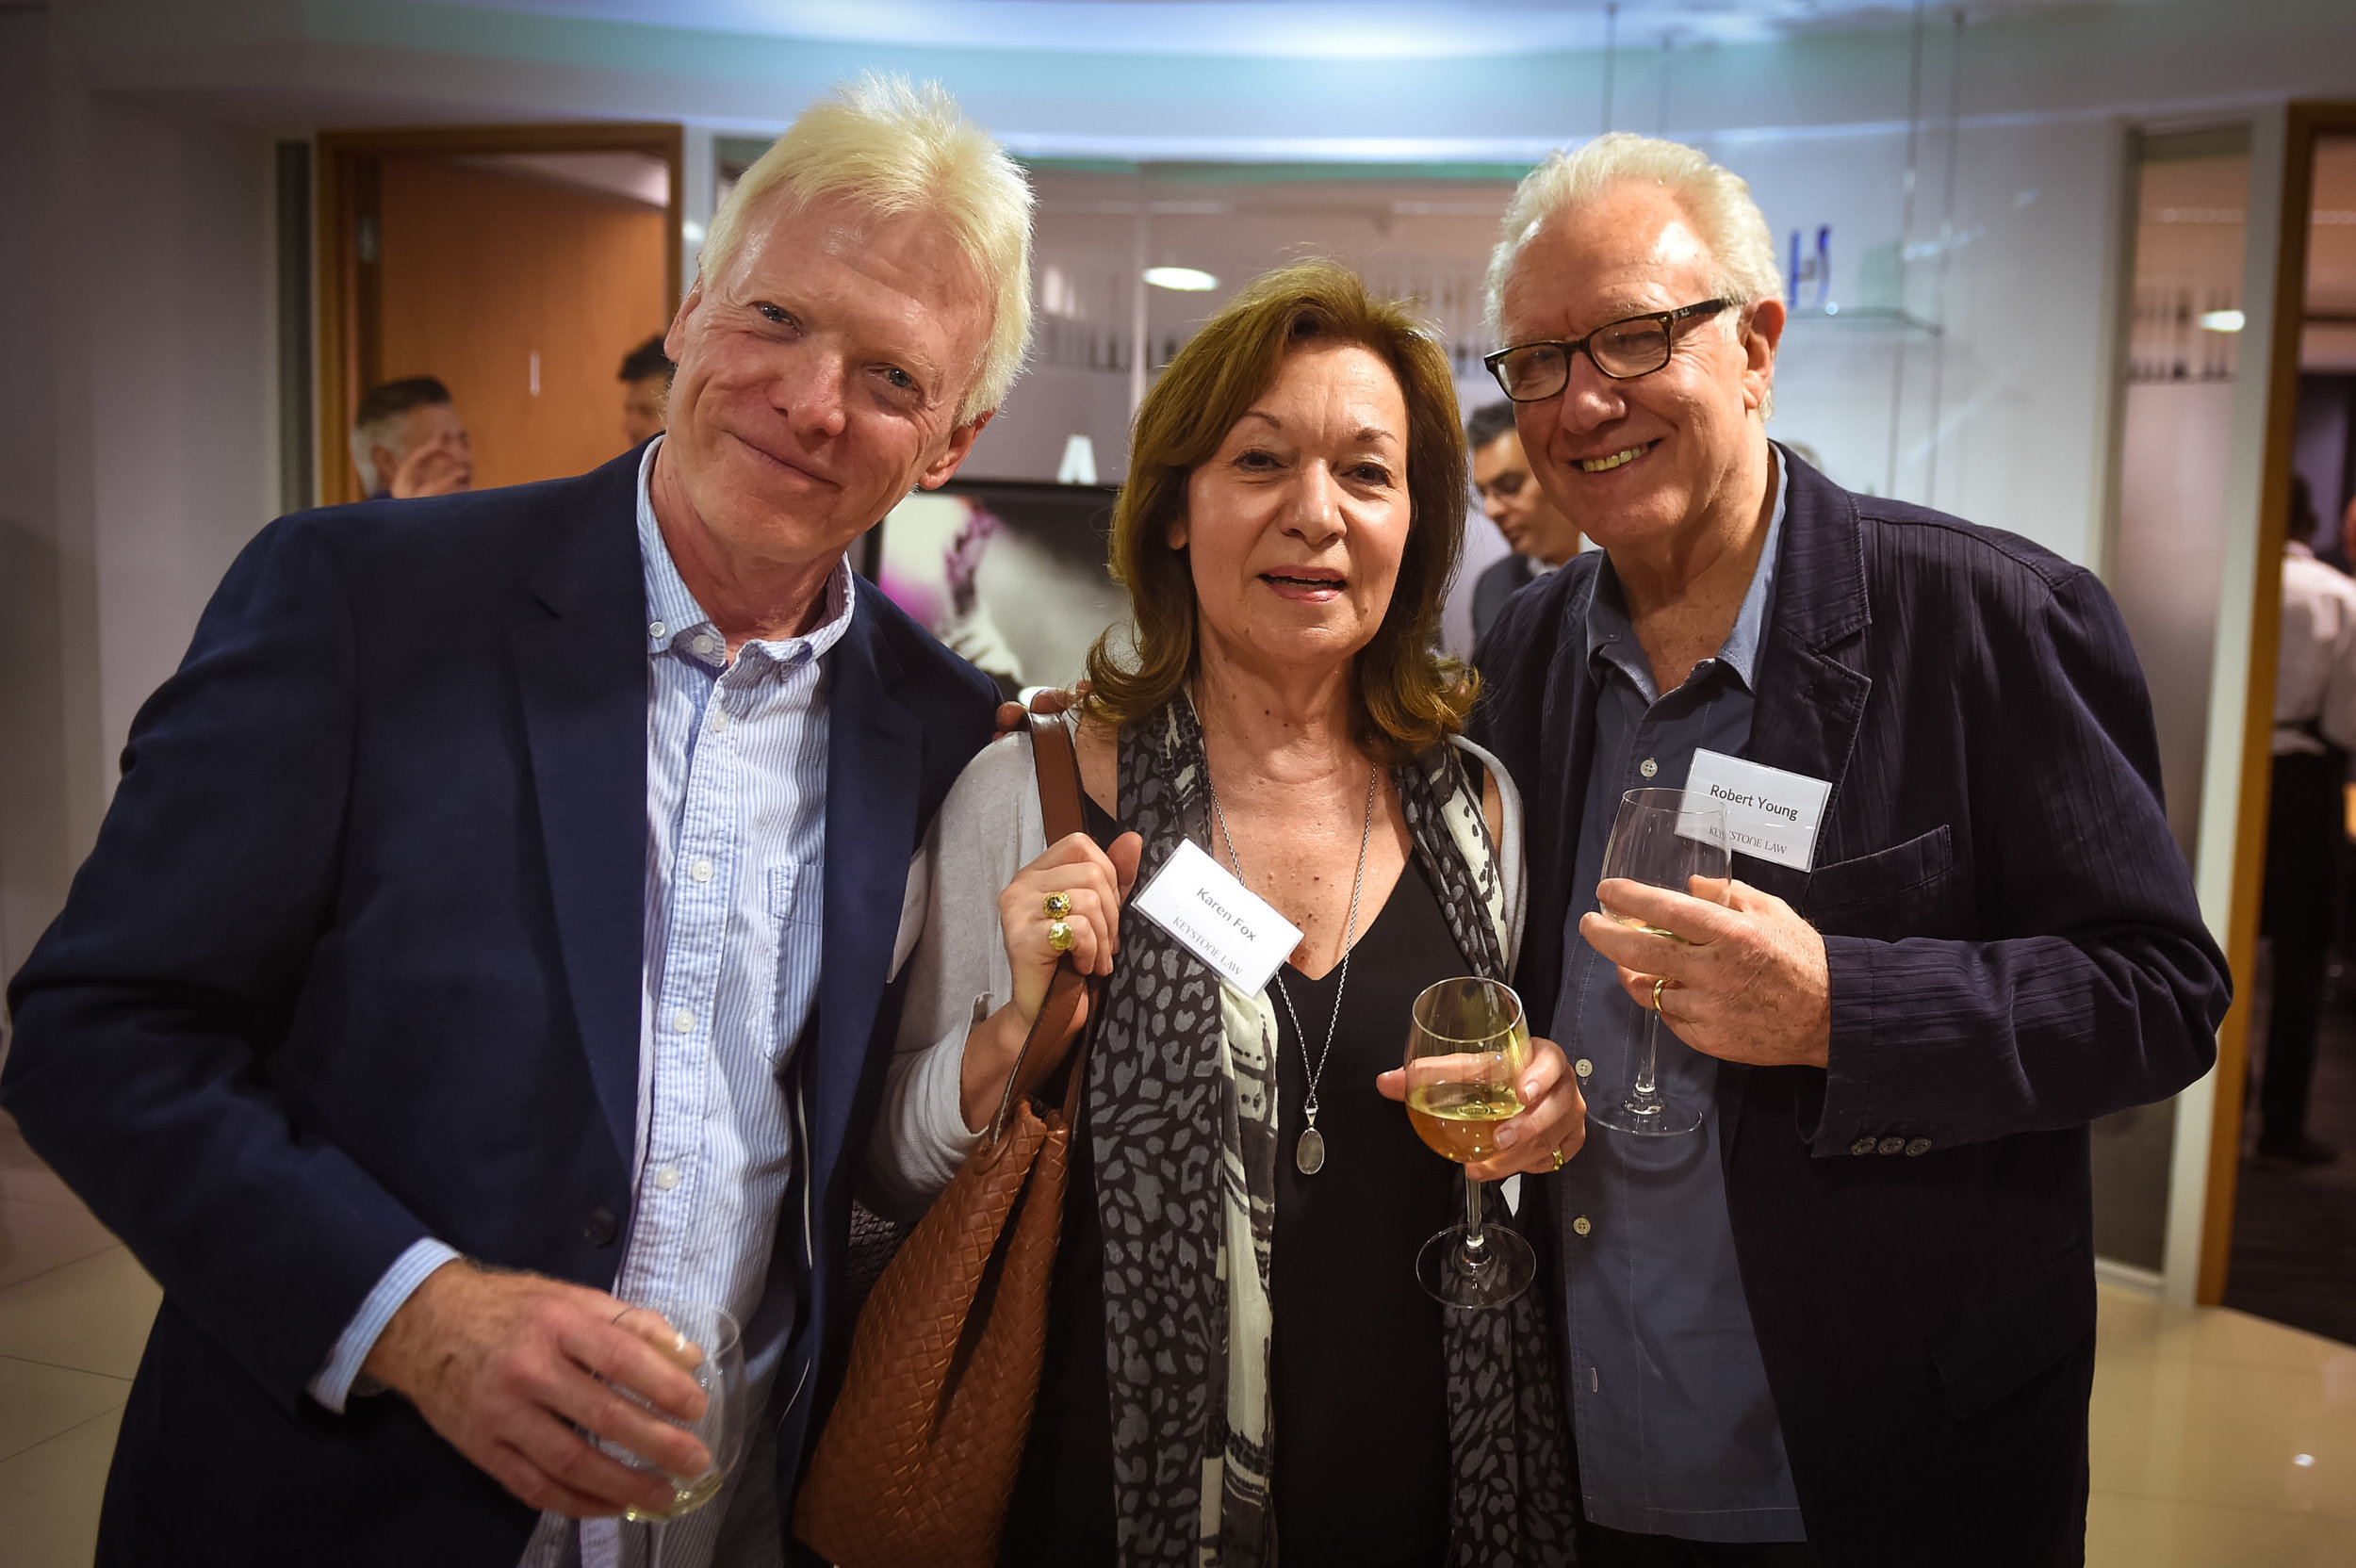 Phonogram Record's Bob Nolan, Karen Fox and the one and only Bob Young